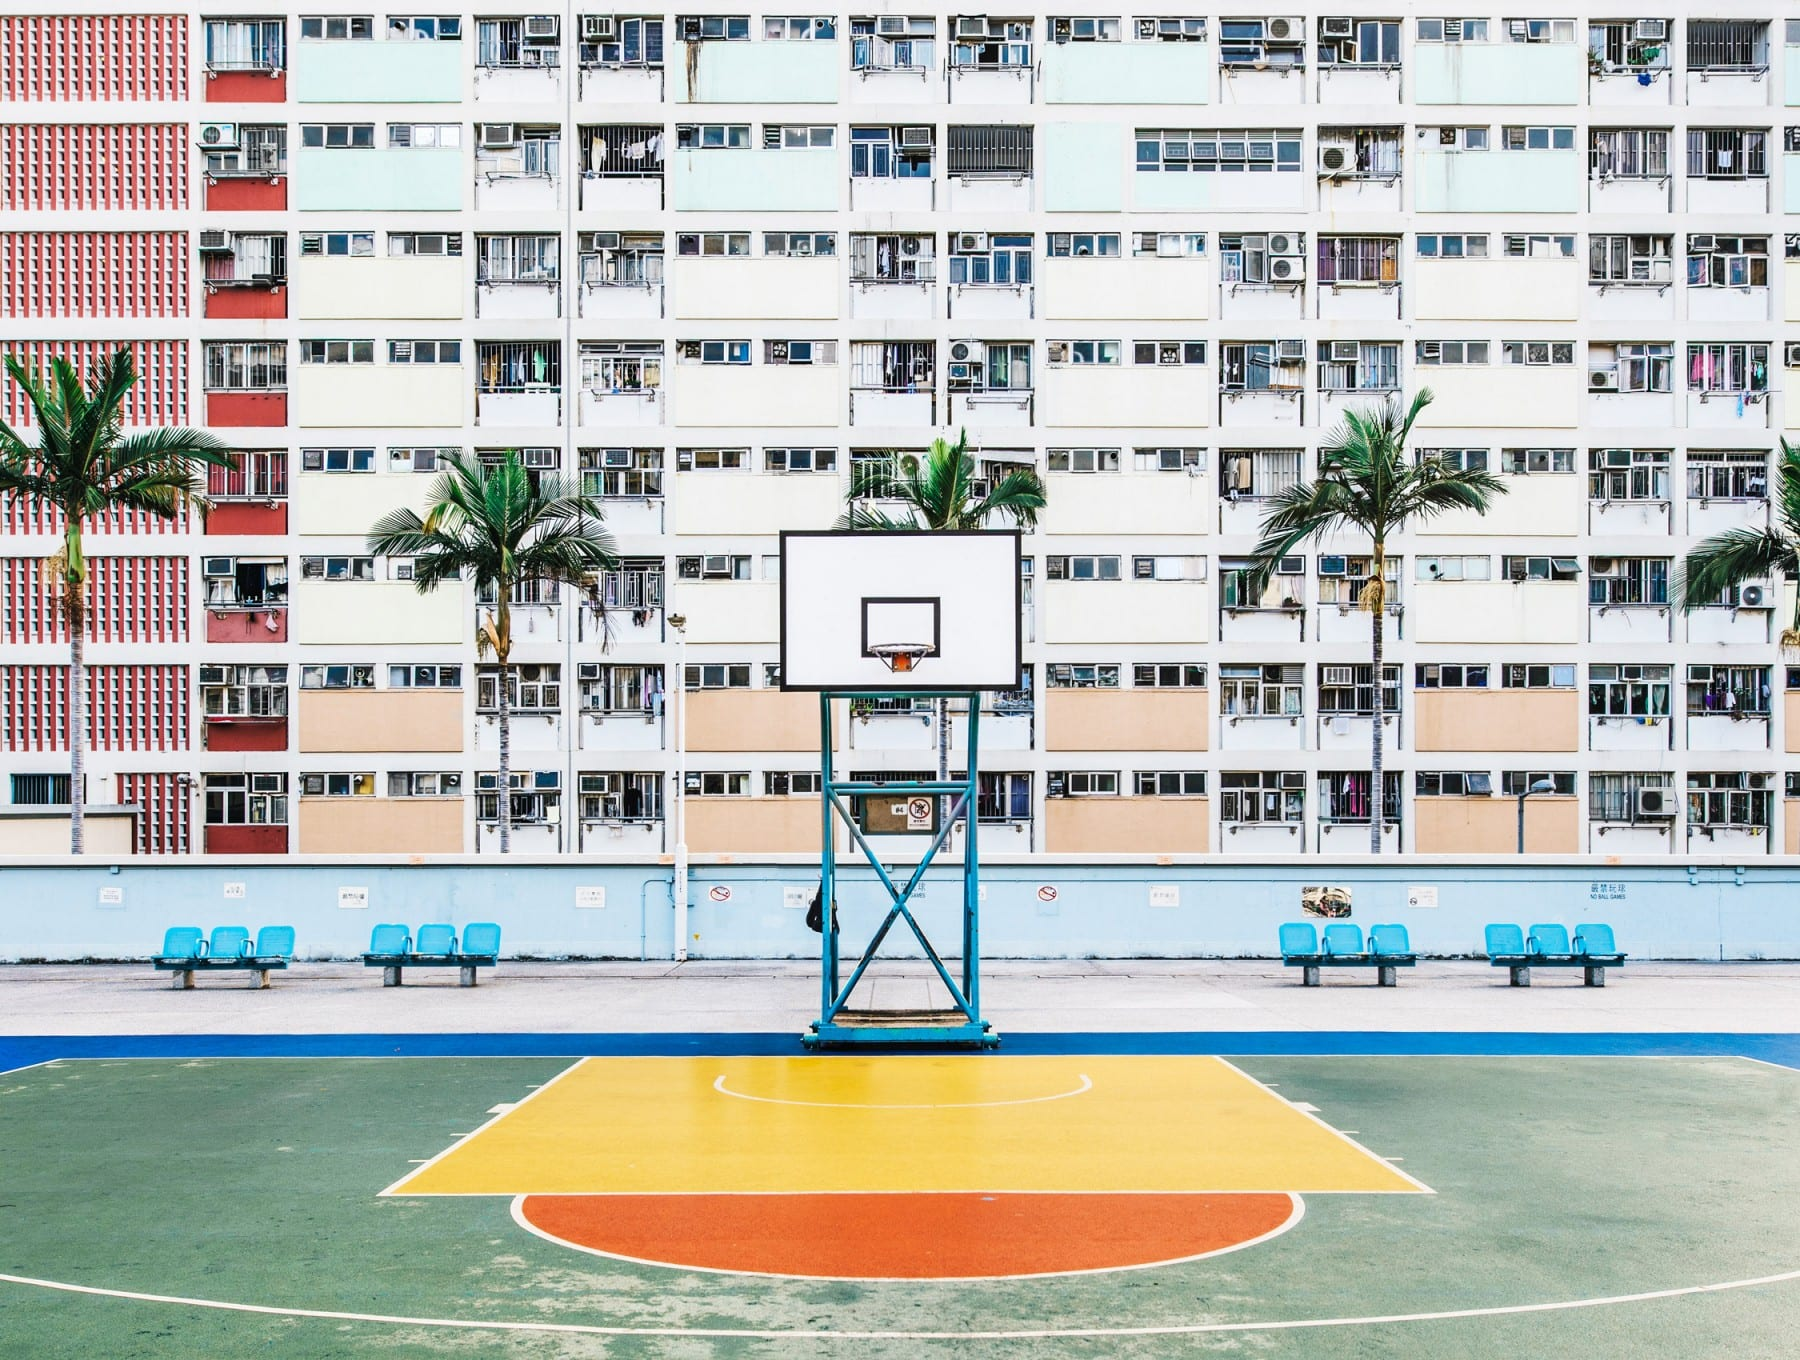 Hong Kong basketball court color photography by guillaume dutreix